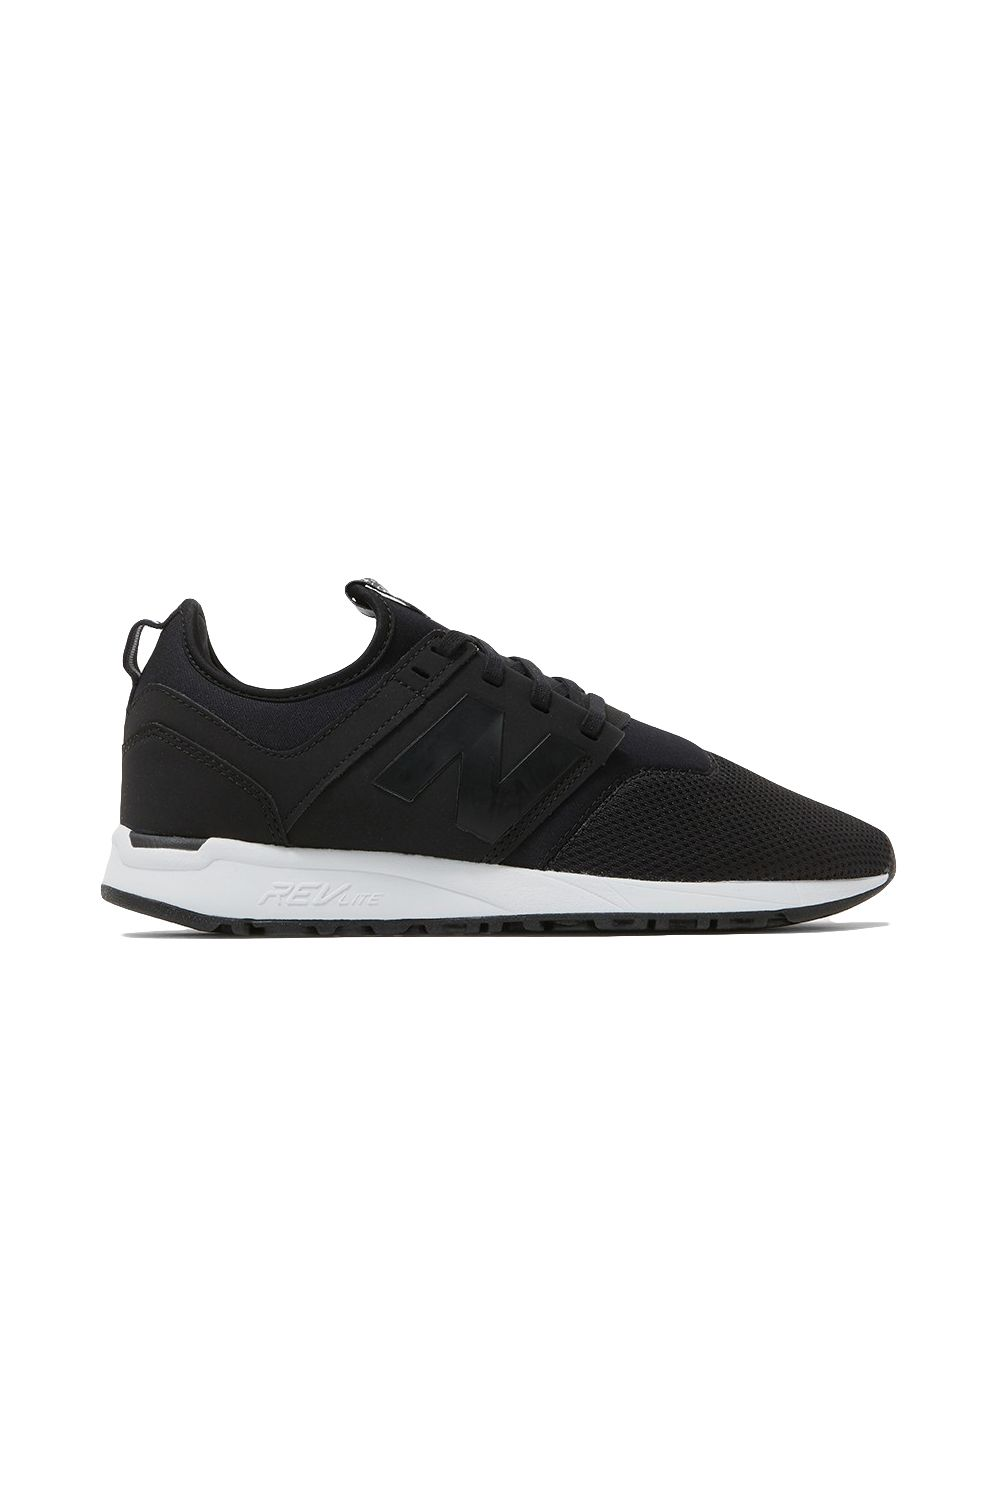 "<p>If you were a celebrity, you would be wearing these as you got into your Ranger Rover.</p><p>New Balance, $80, <a href=""http://needsupply.com/womens/shoes/sneakers/lace-up/247-in-black-white.html"" target=""_blank"" data-tracking-id=""recirc-text-link"">needsupply.com</a>.</p>"